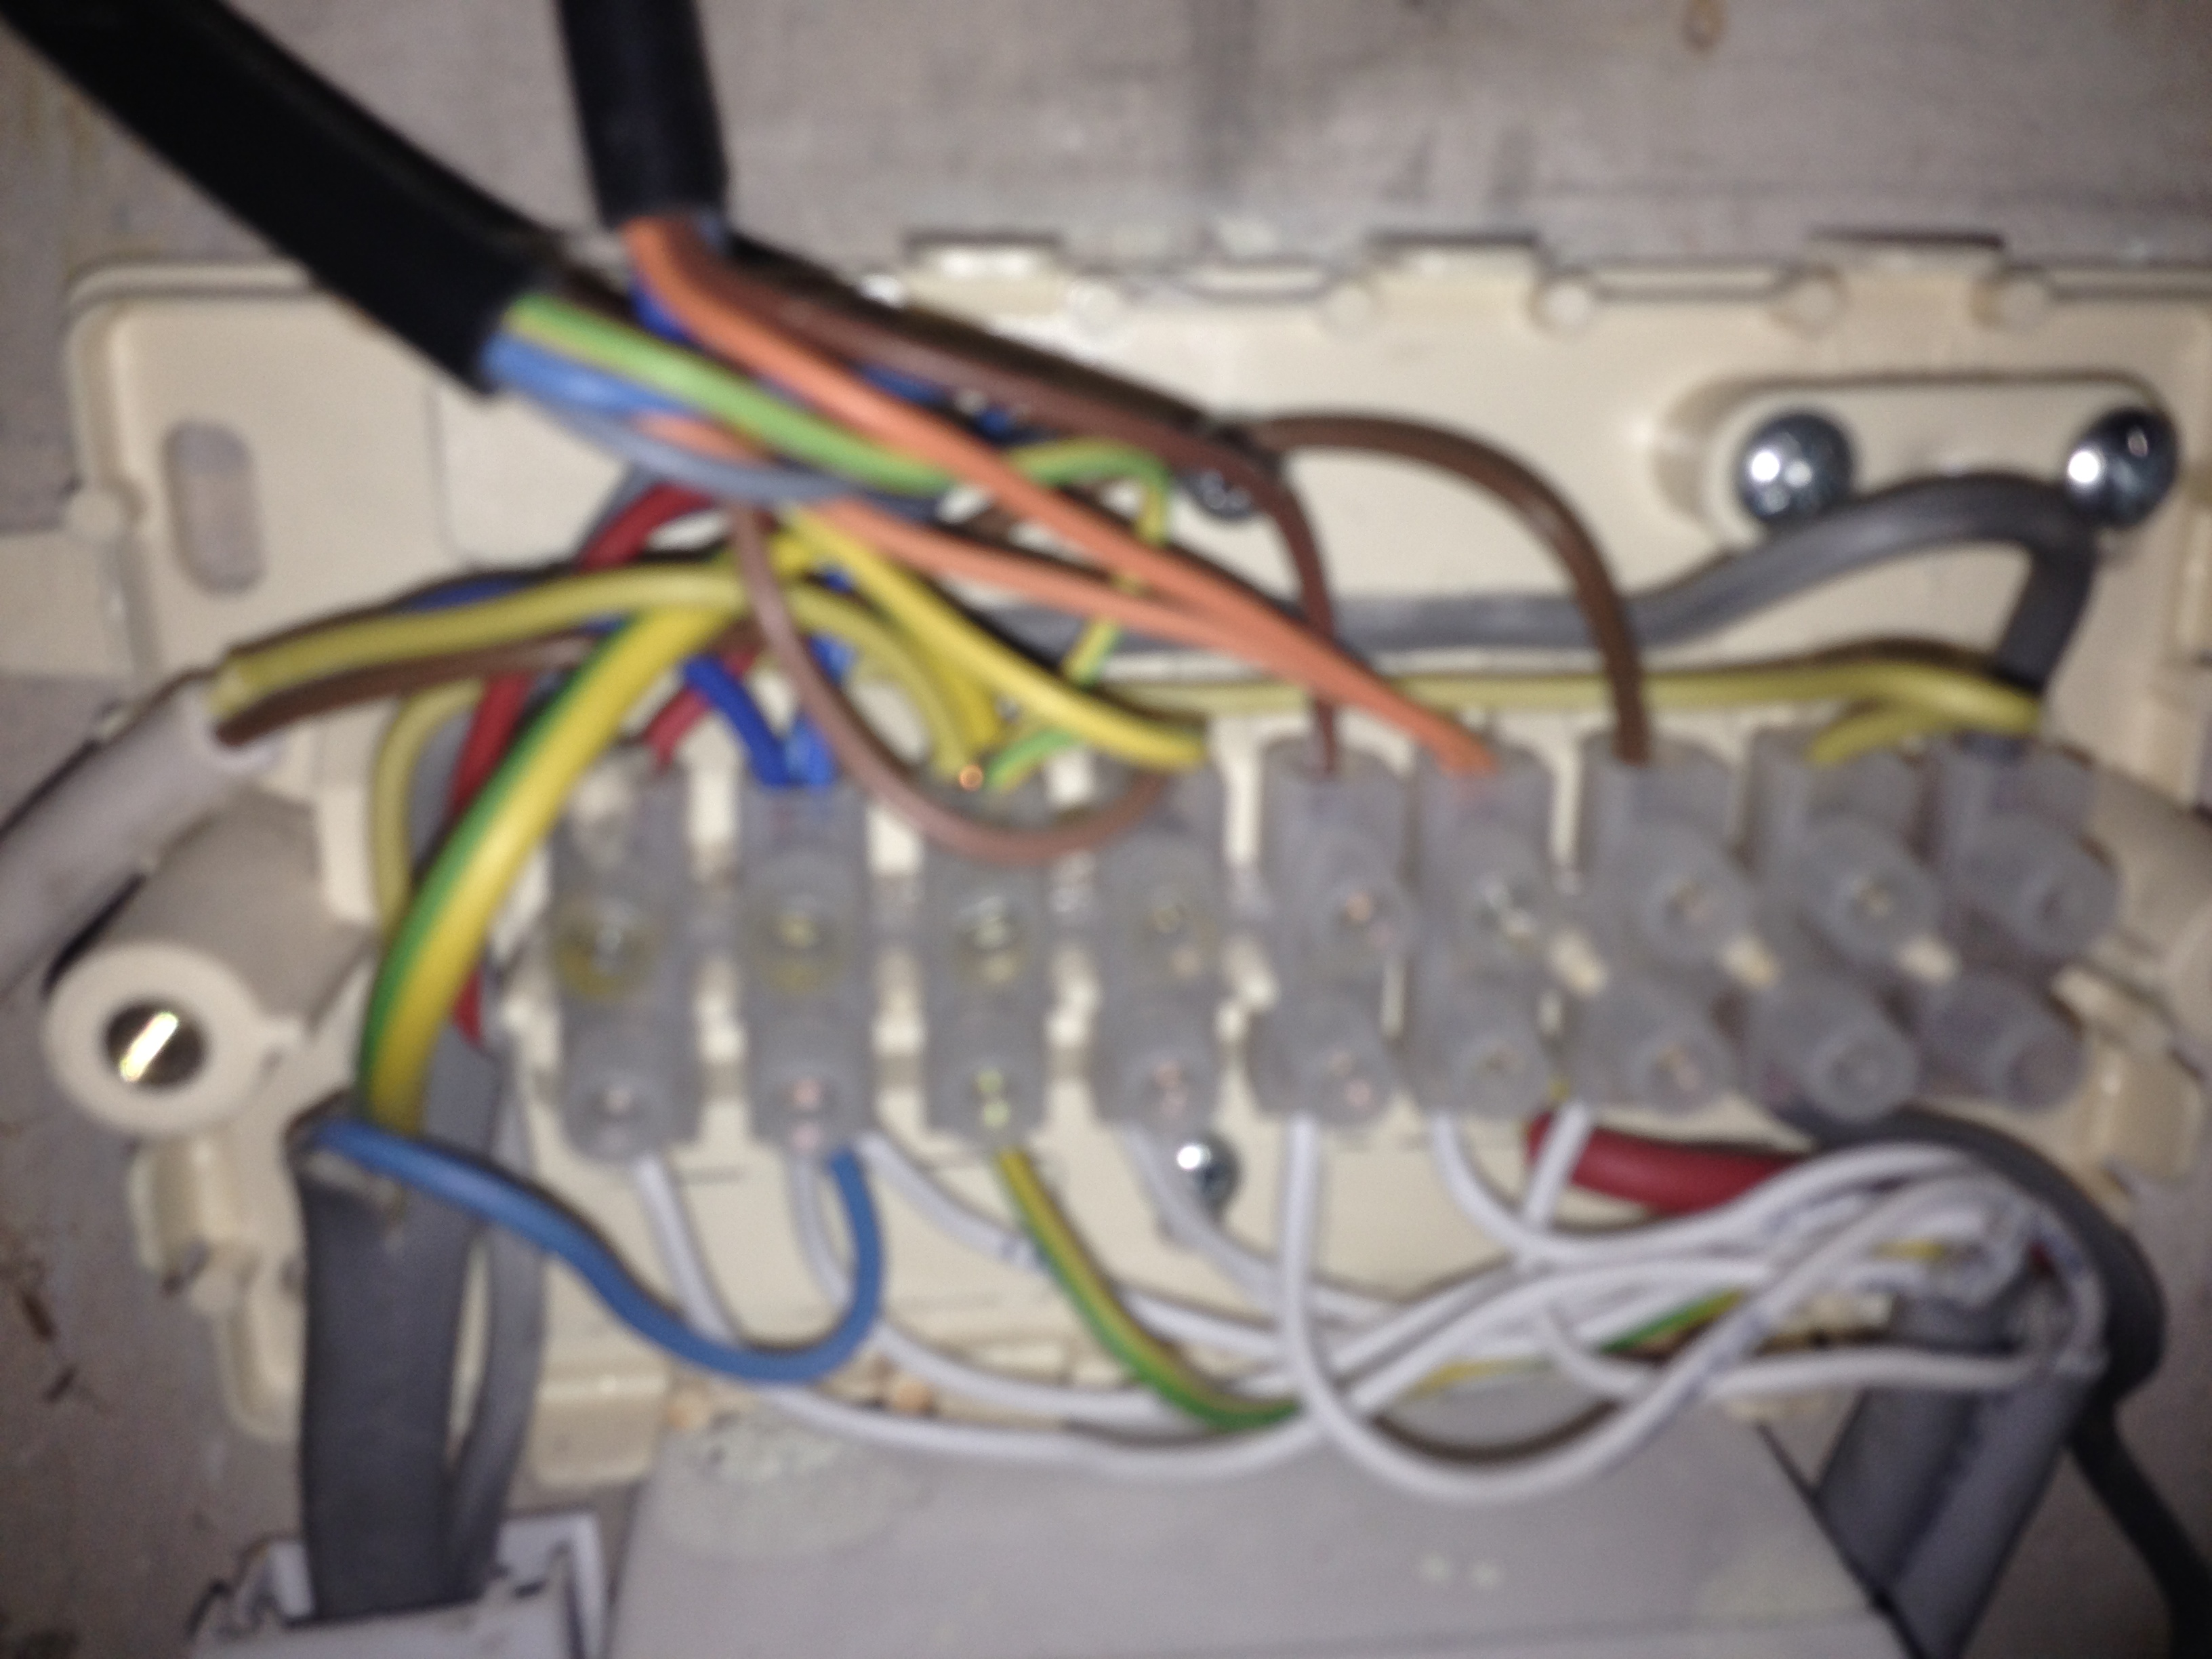 Hi This Is Michael Another Expert Has Given Me The Wiring Diagram To